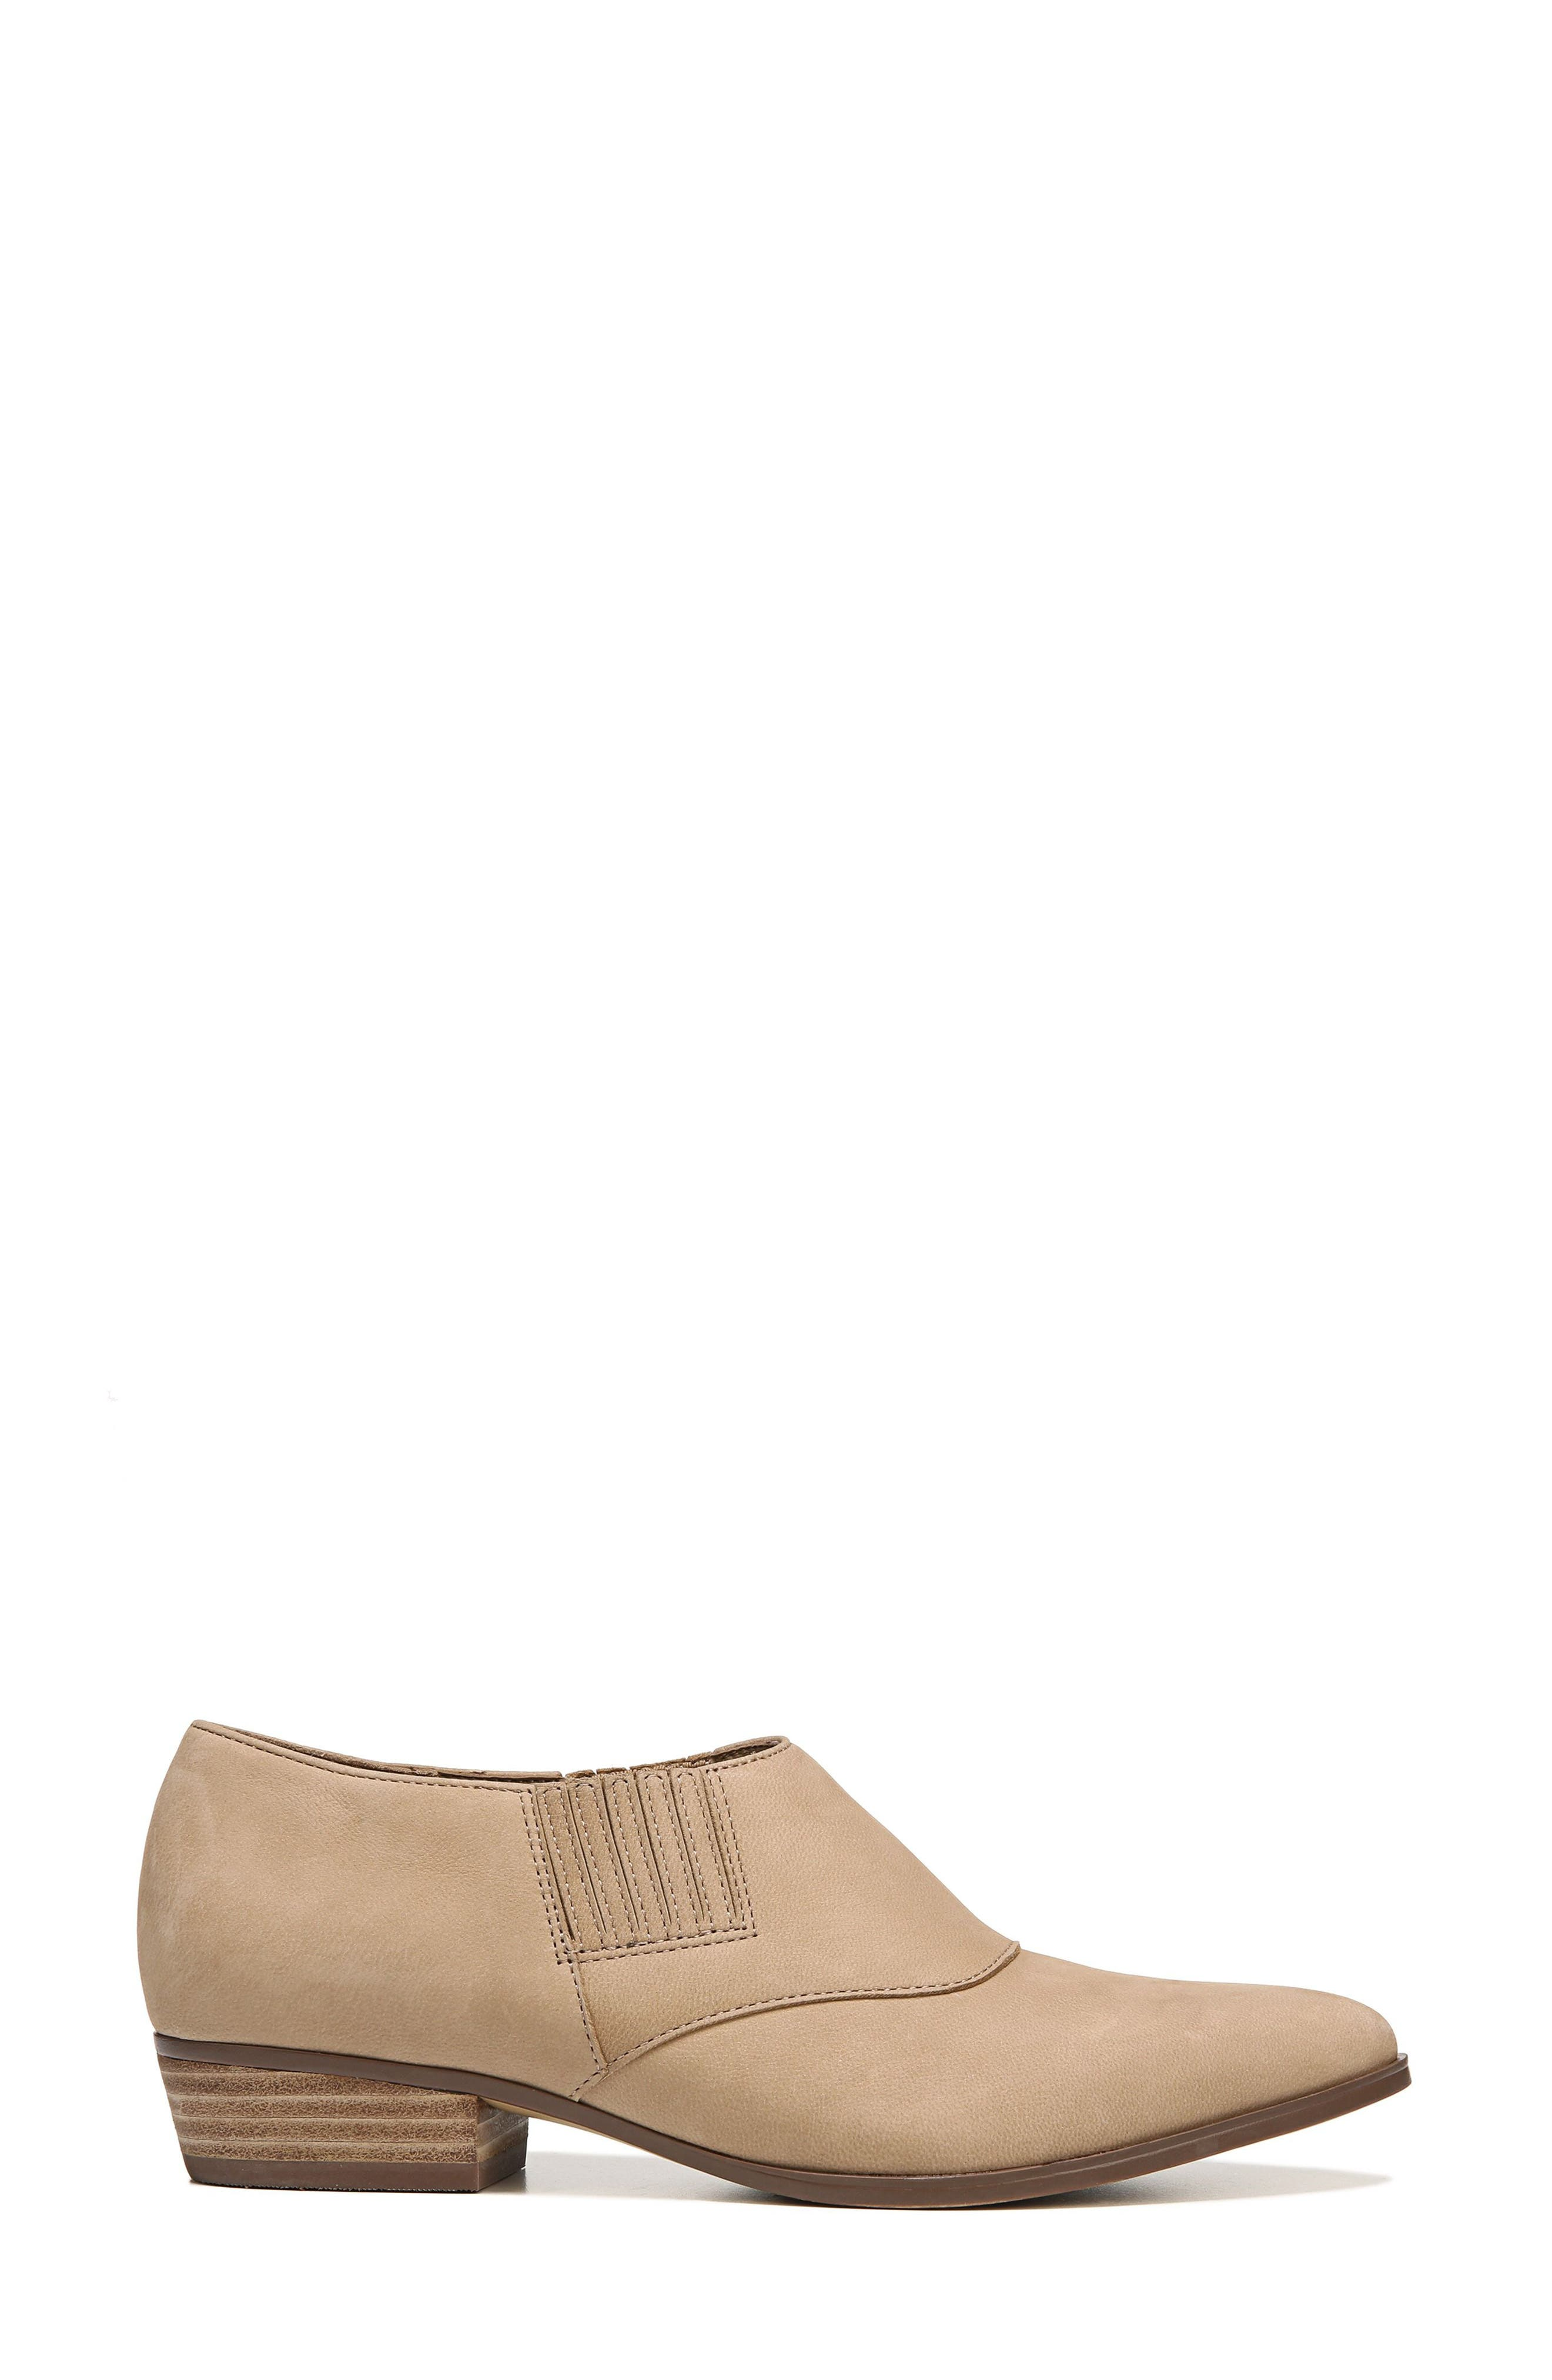 Blythe Bootie,                             Alternate thumbnail 3, color,                             Toasted Barley Nubuck